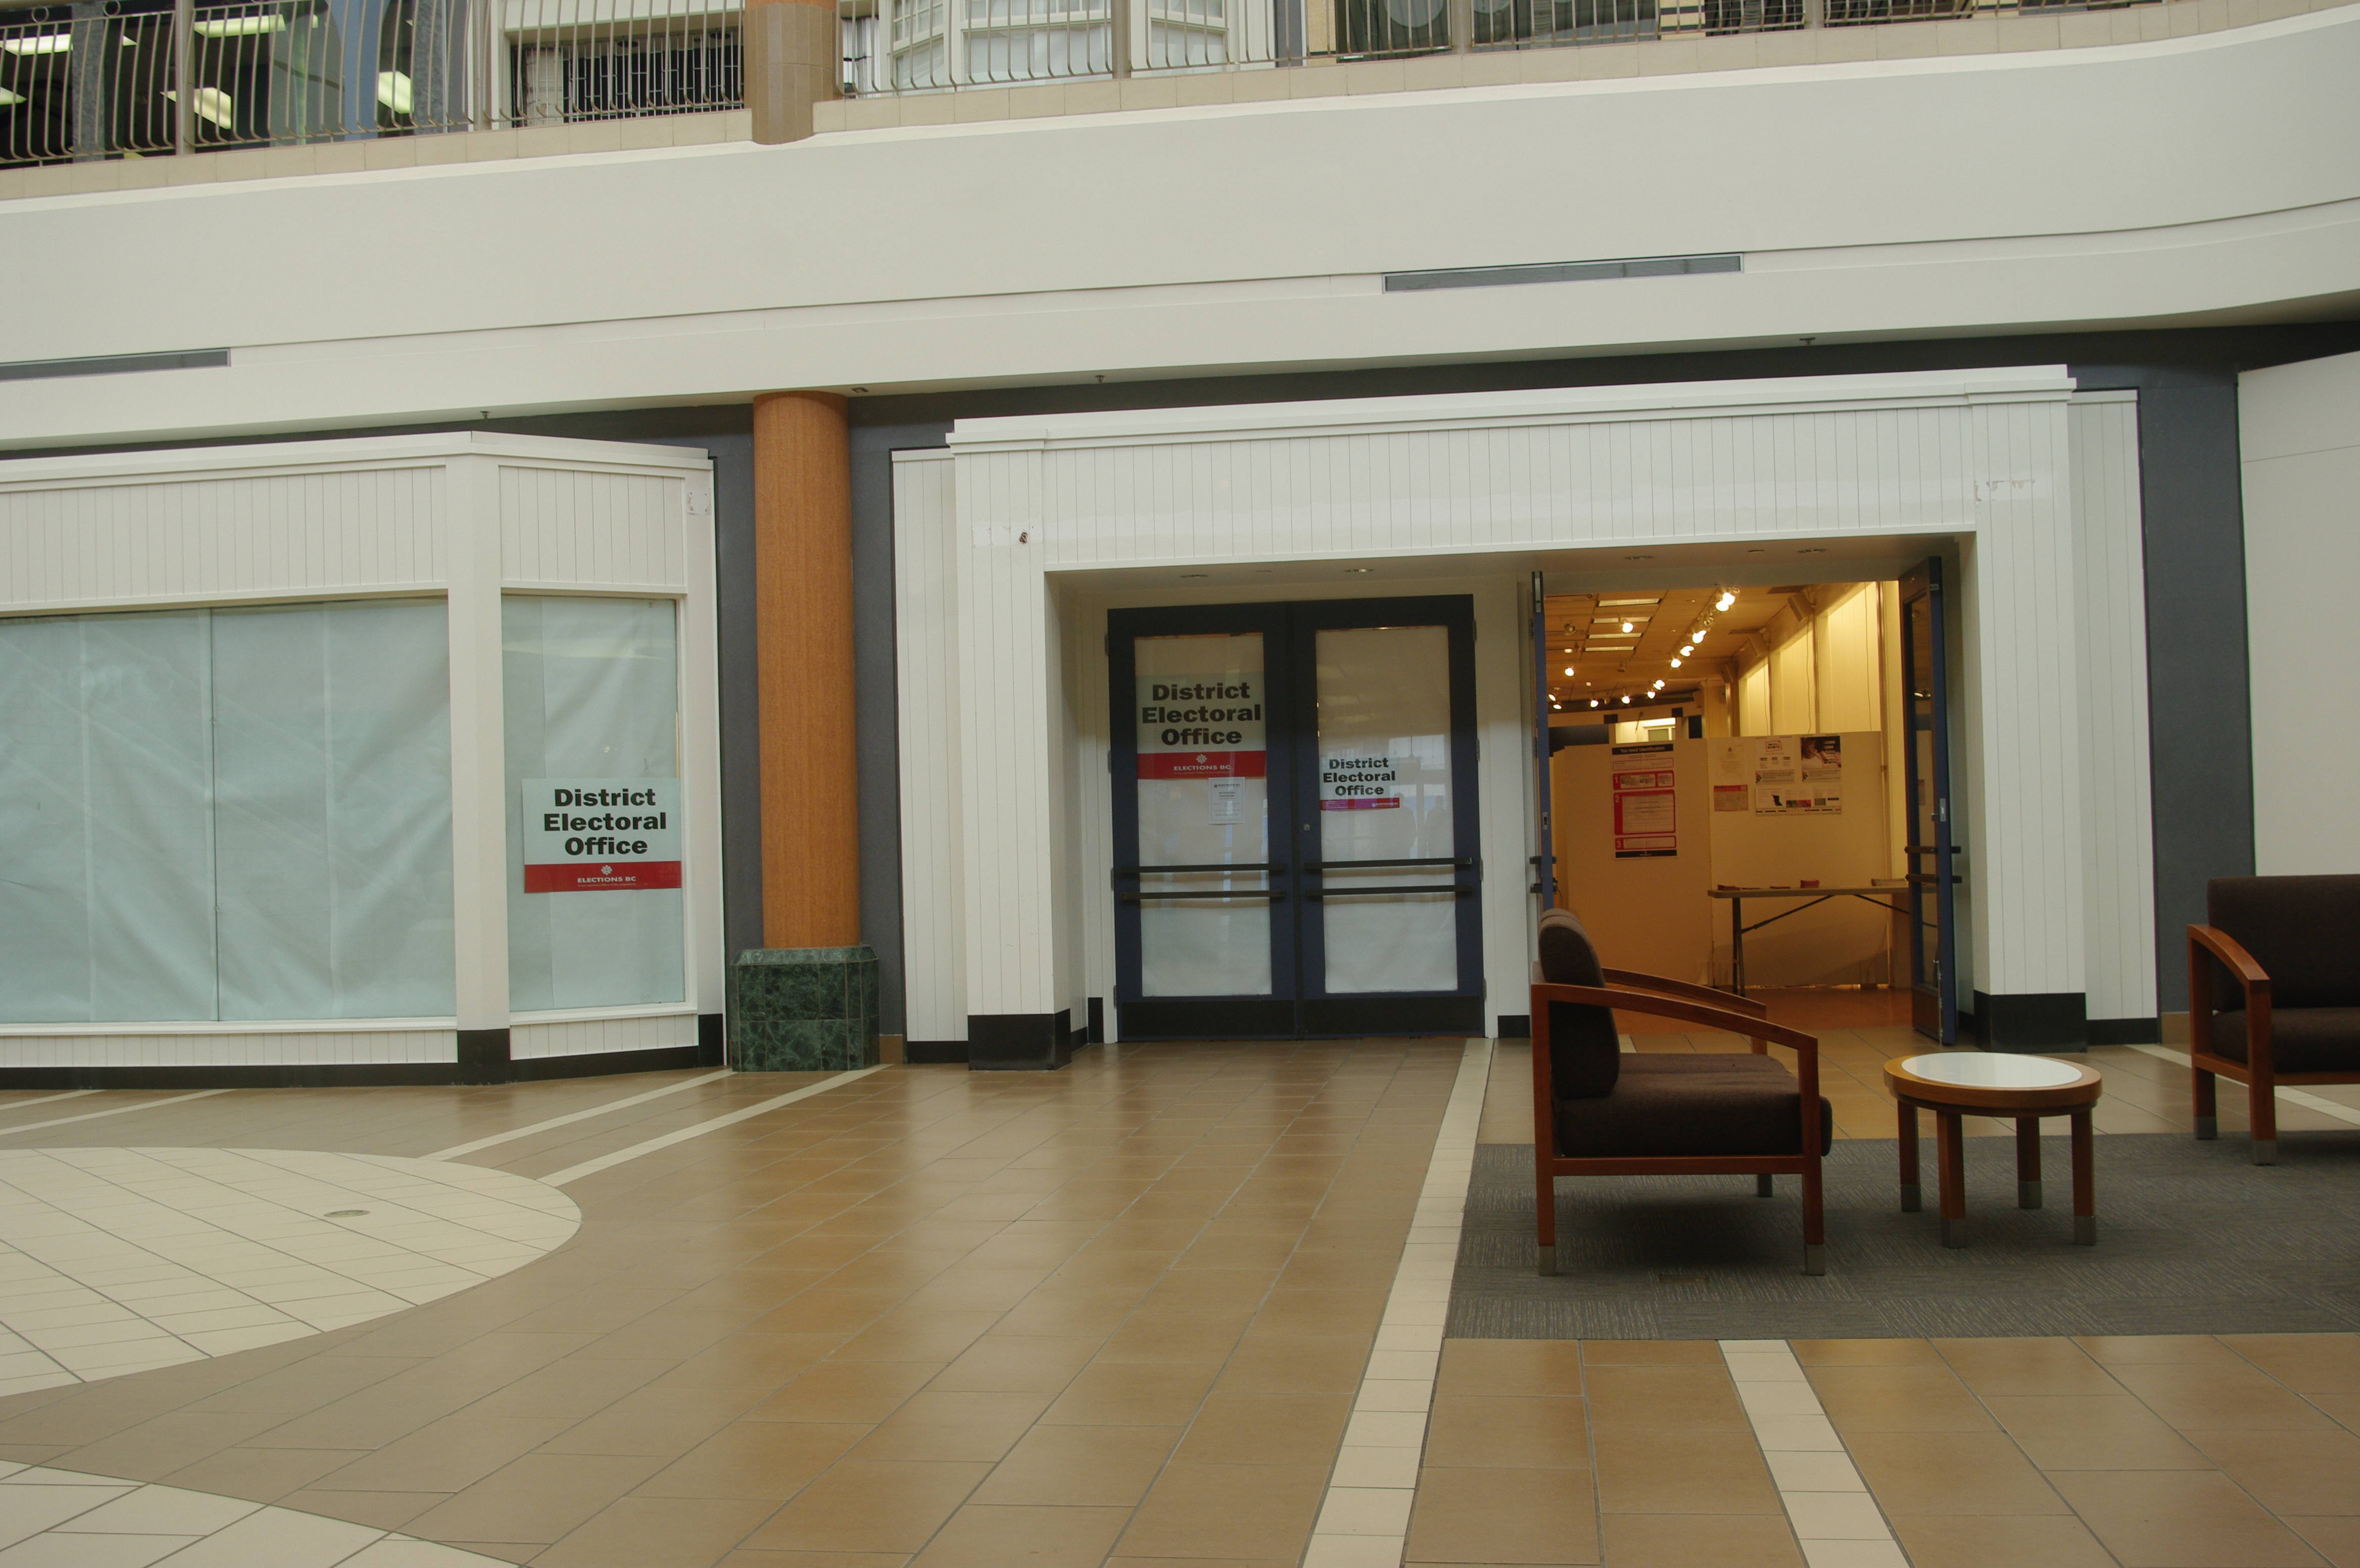 Burnaby North District Electoral Office inside Brentwood Town Centre